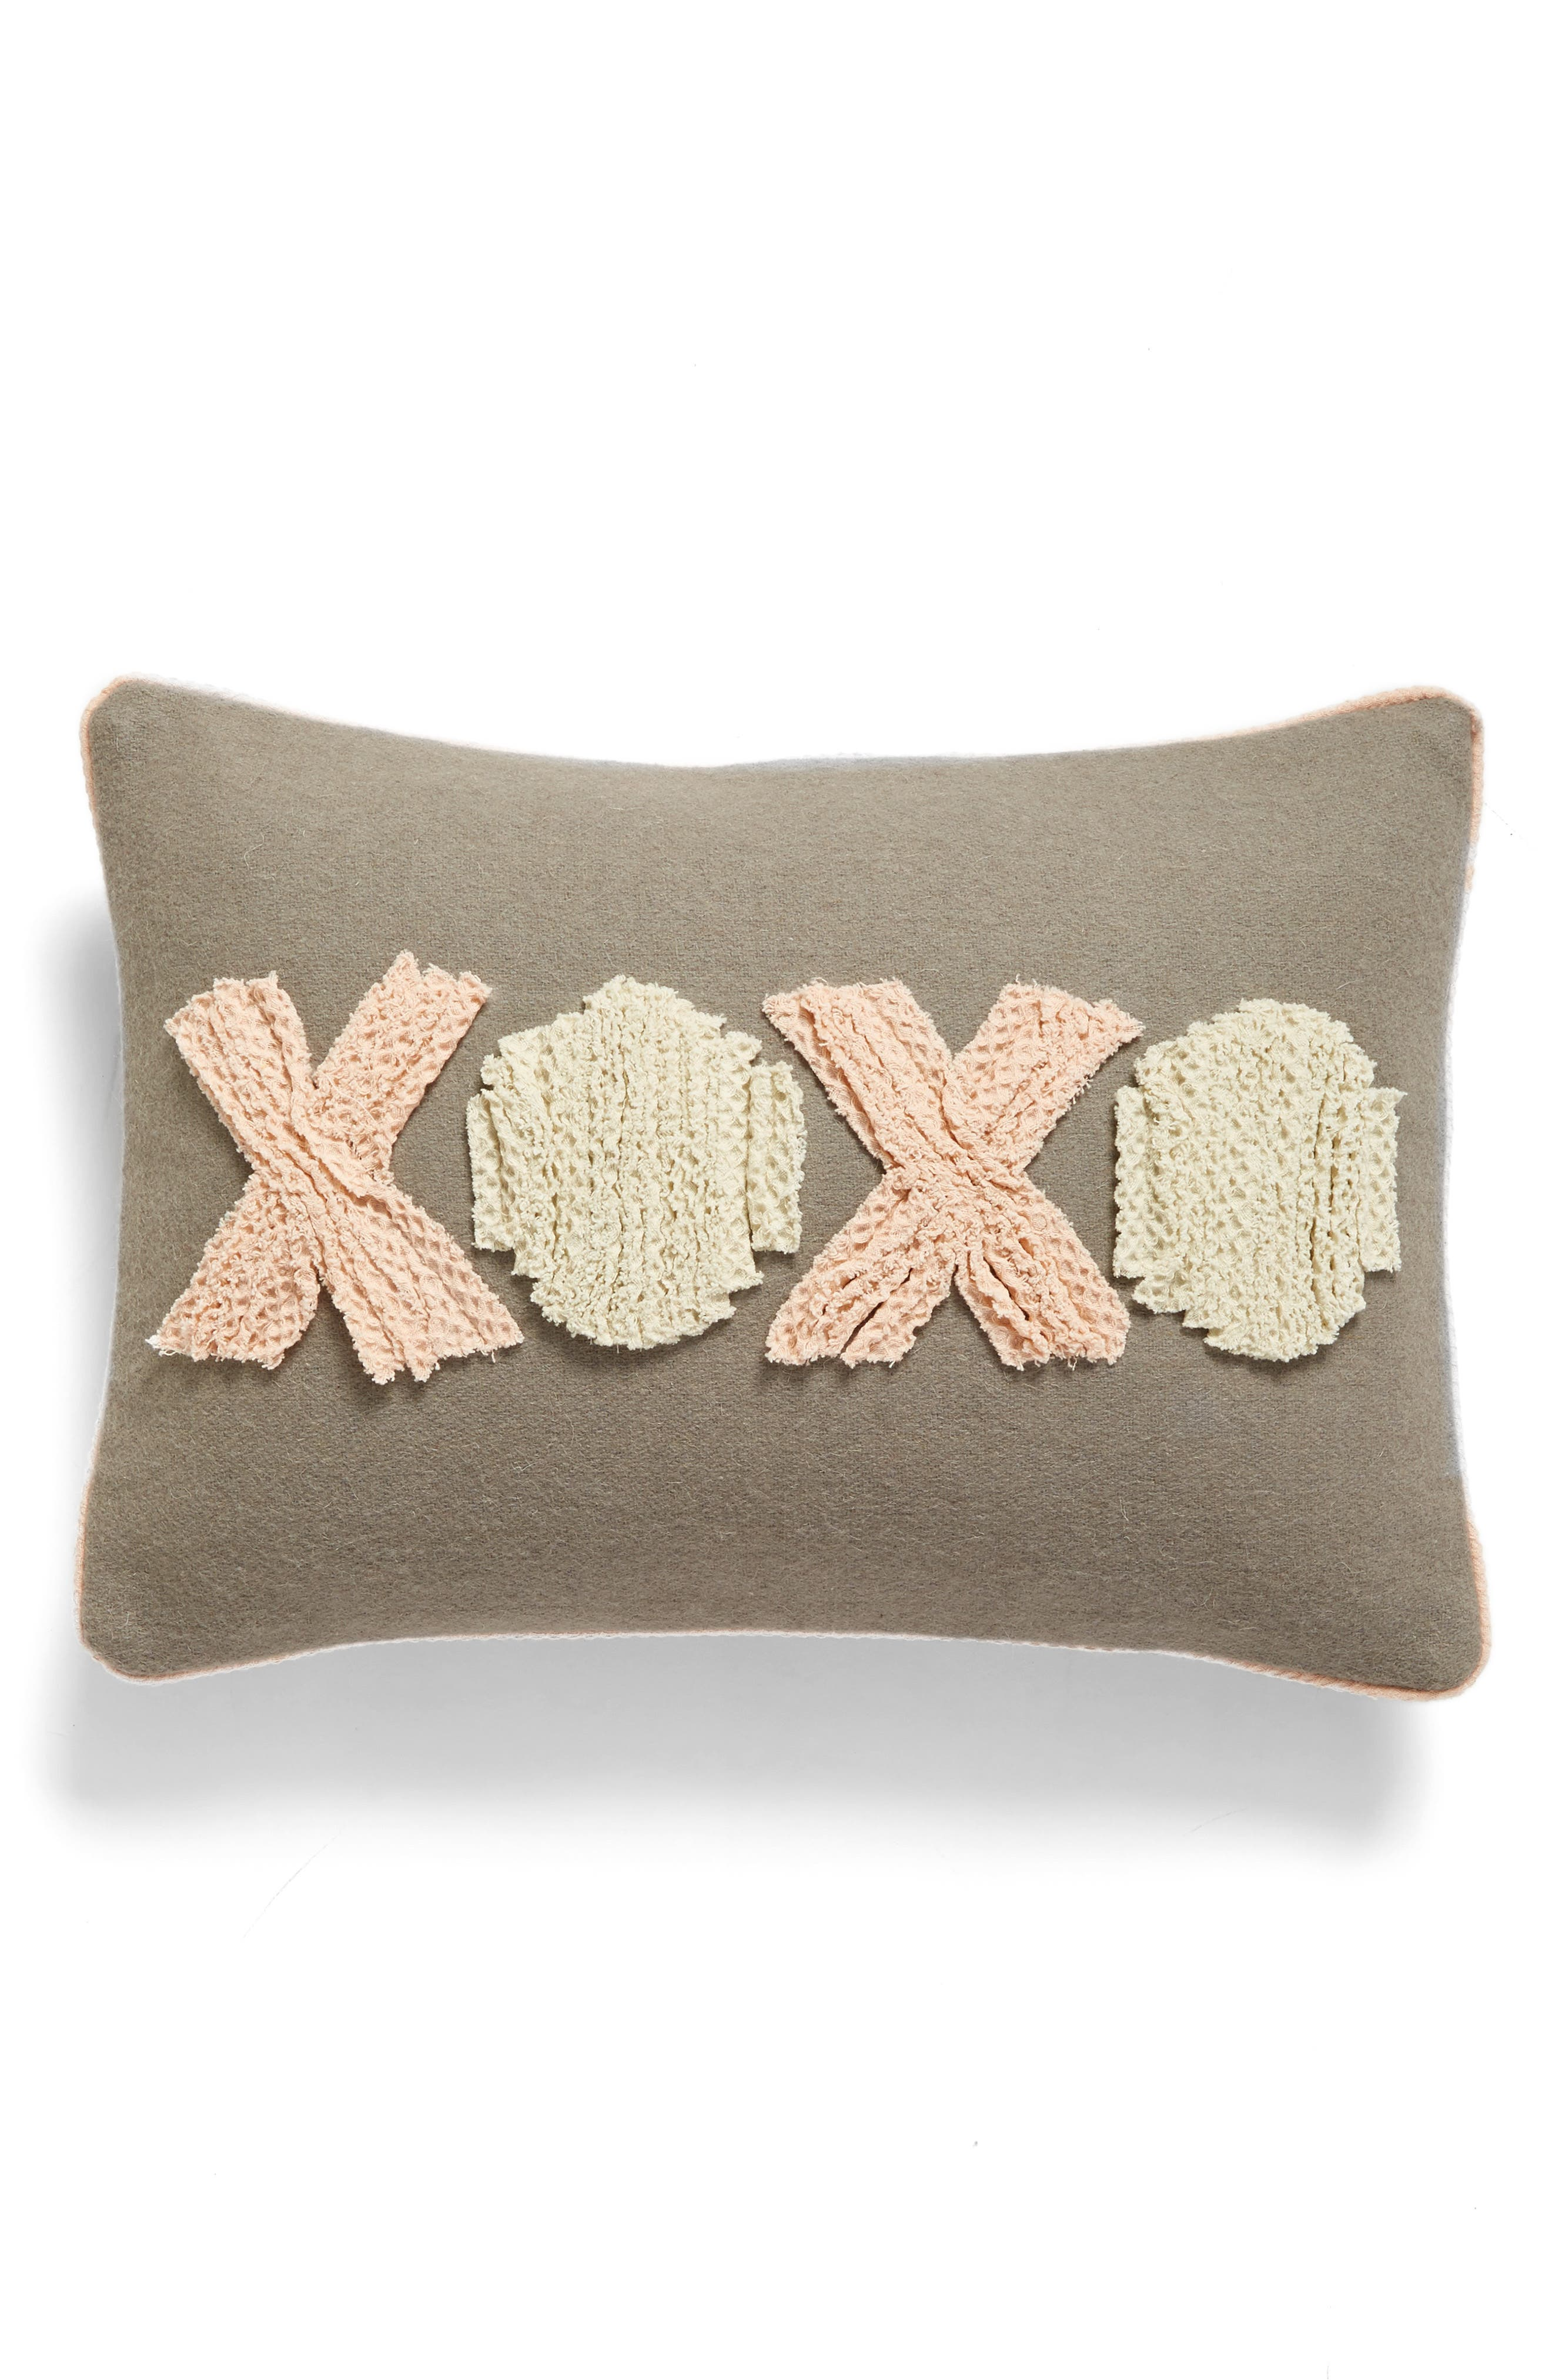 XOXO Accent Pillow,                         Main,                         color, Grey Heather Multi